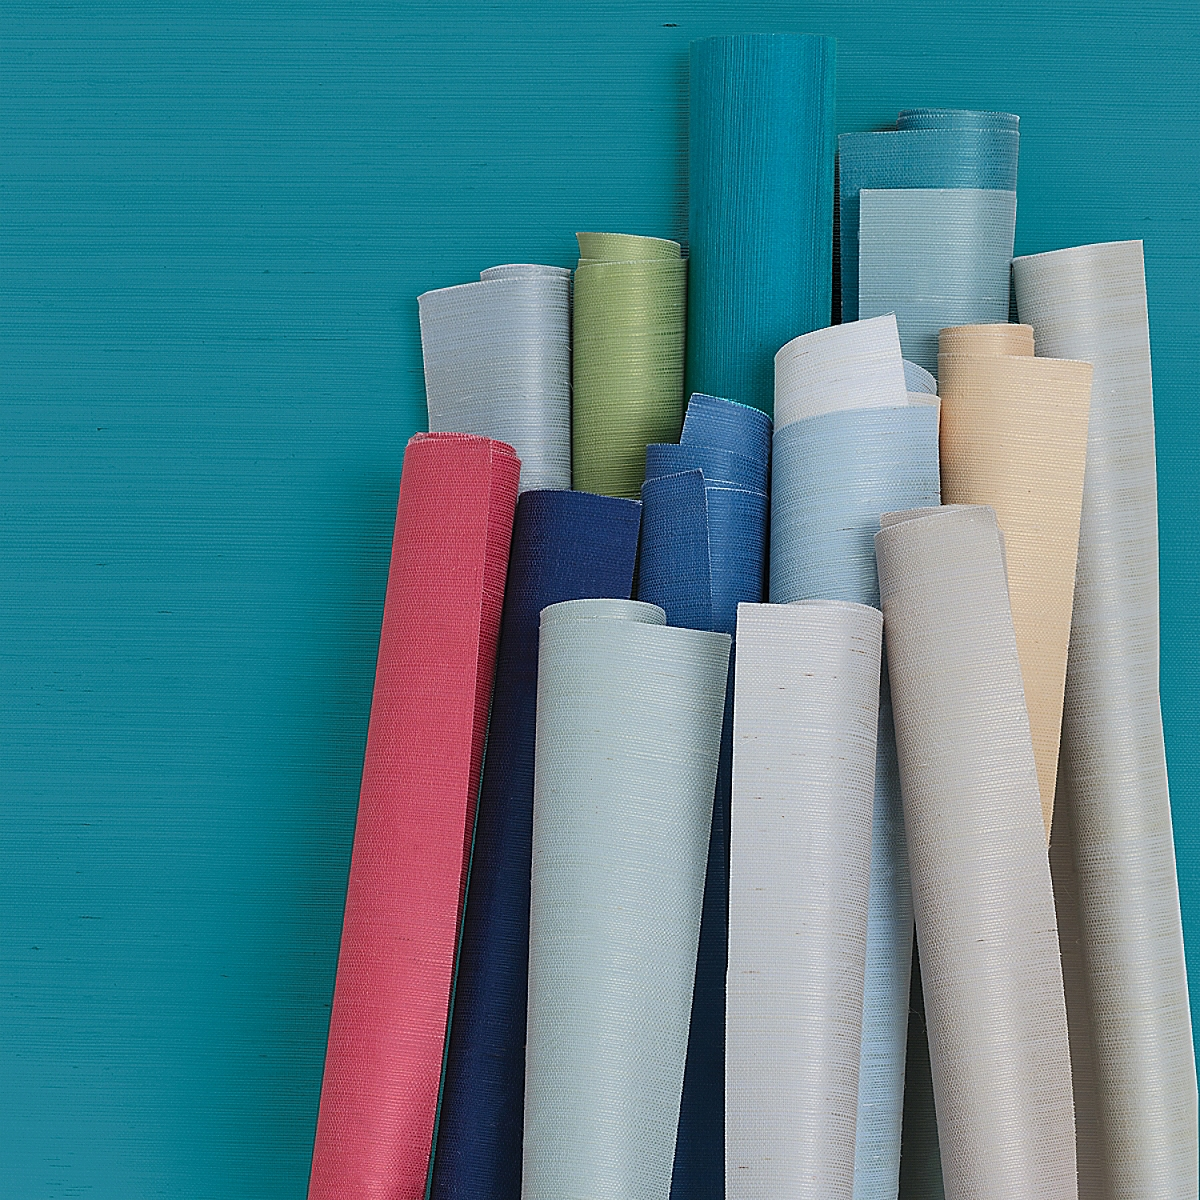 Grasscloth Wallcovering in Teal